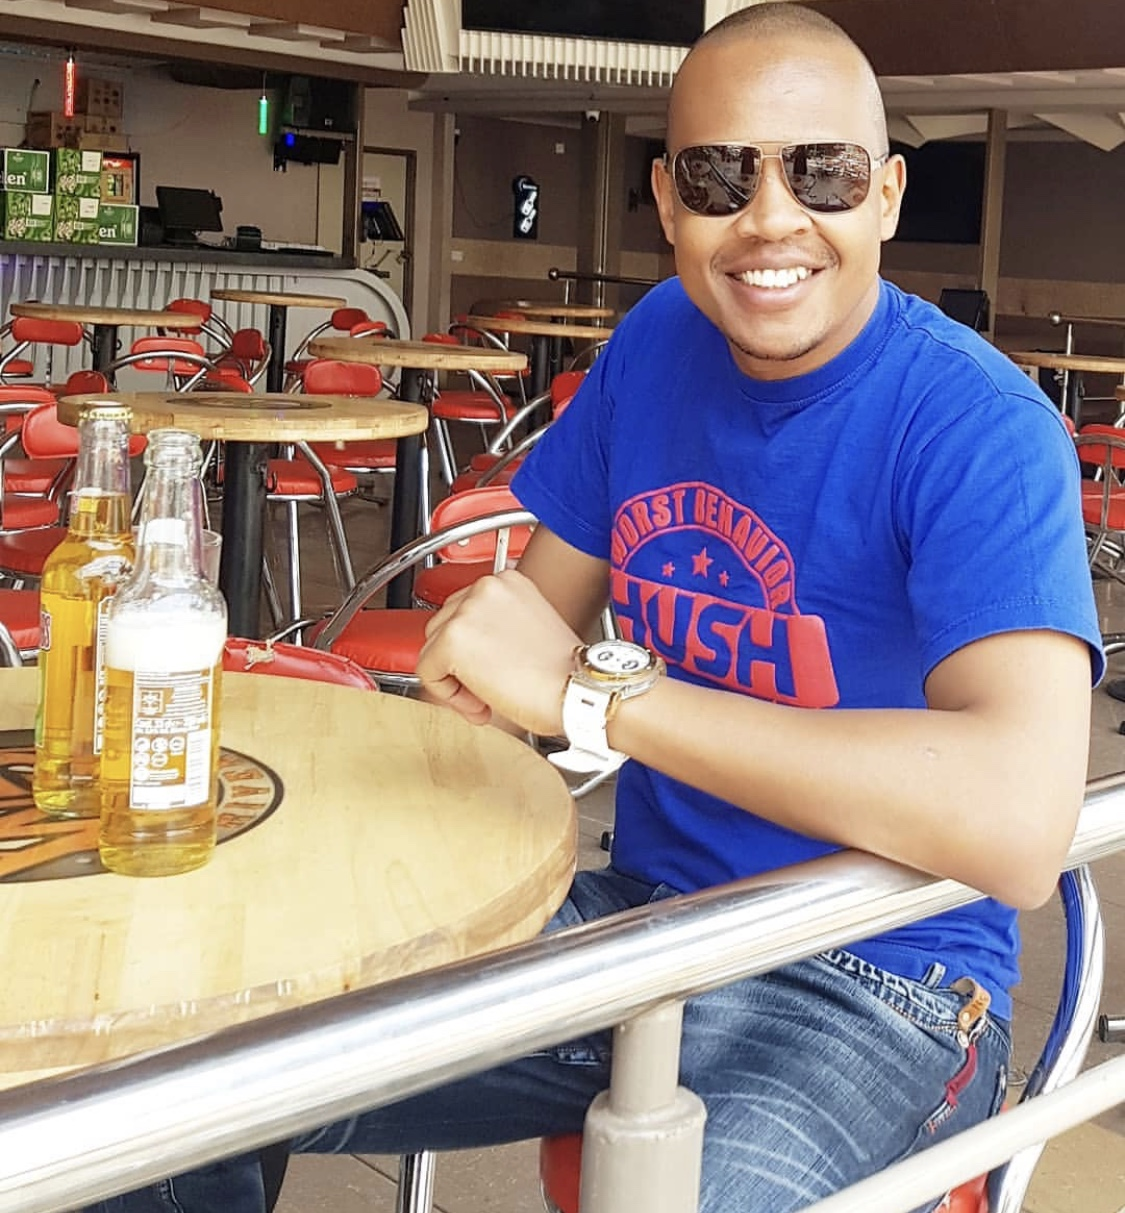 It's a trap!DNG warns Nyashinski against working with his new wife